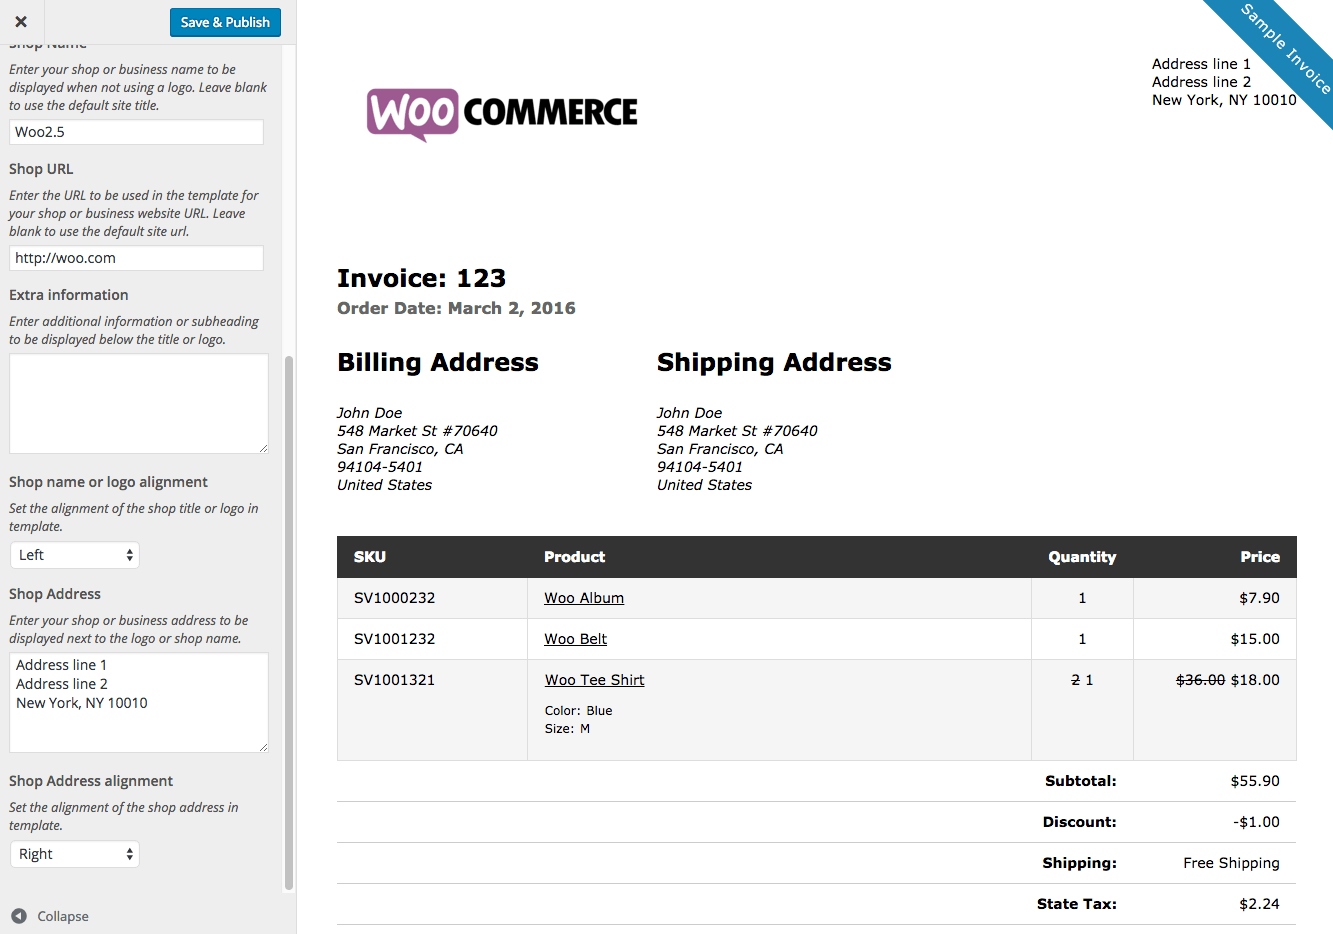 Thassosus  Sweet Print Invoices Amp Packing Lists  Woocommerce With Goodlooking Woocommerce Print Invoices  Packing Lists Customizer With Charming Sme Invoice Finance Ltd Also Courier Invoice Template In Addition Free Service Invoice Templates And Return To Invoice As Well As Payment Invoices Additionally Invoice Gst From Woocommercecom With Thassosus  Goodlooking Print Invoices Amp Packing Lists  Woocommerce With Charming Woocommerce Print Invoices  Packing Lists Customizer And Sweet Sme Invoice Finance Ltd Also Courier Invoice Template In Addition Free Service Invoice Templates From Woocommercecom